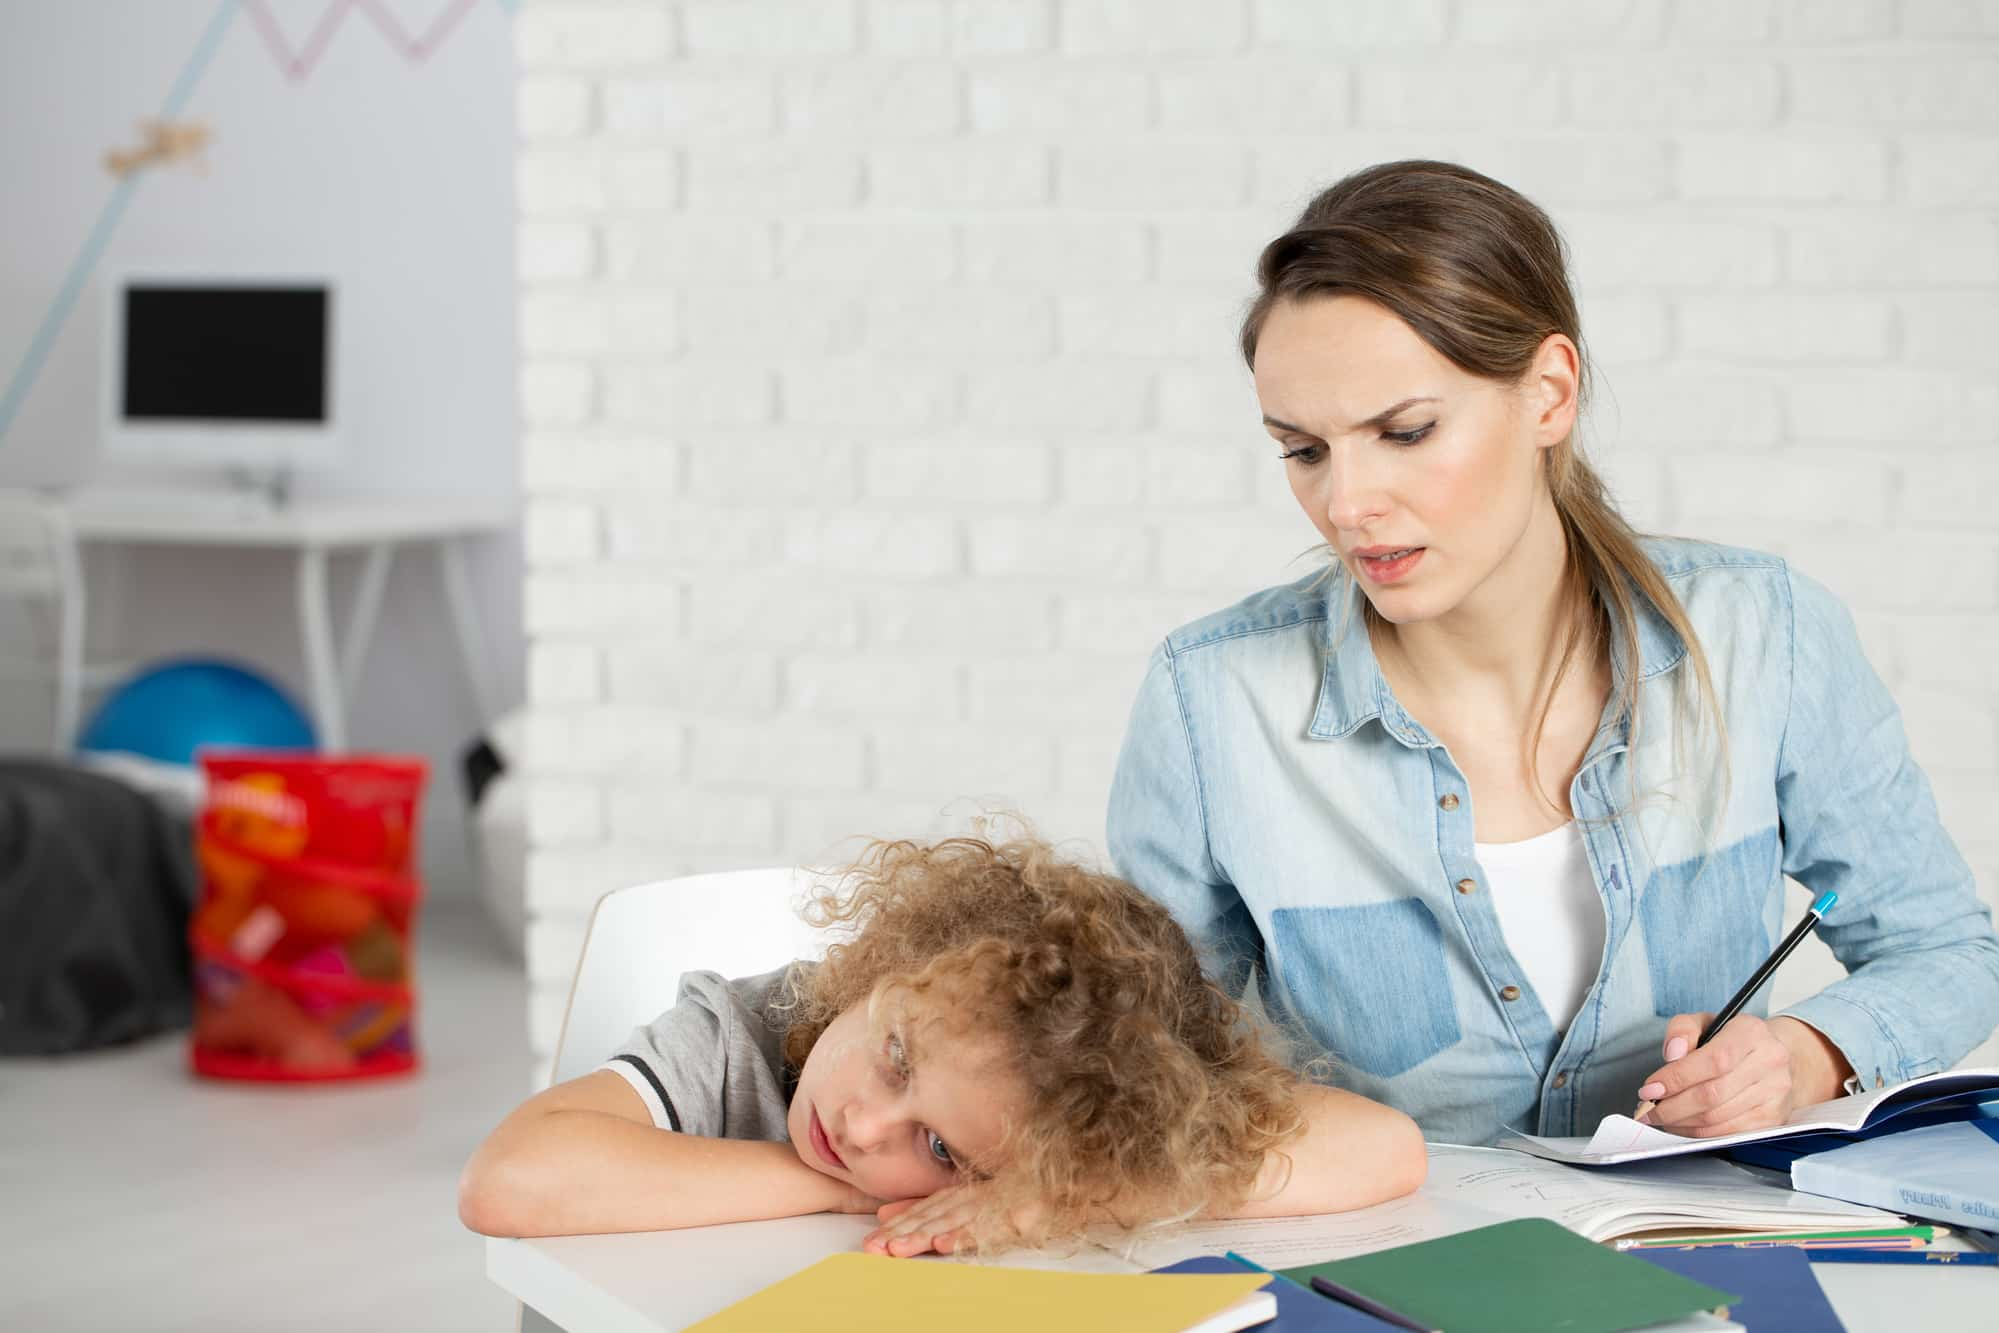 ADHD and sleep deprivation in kids